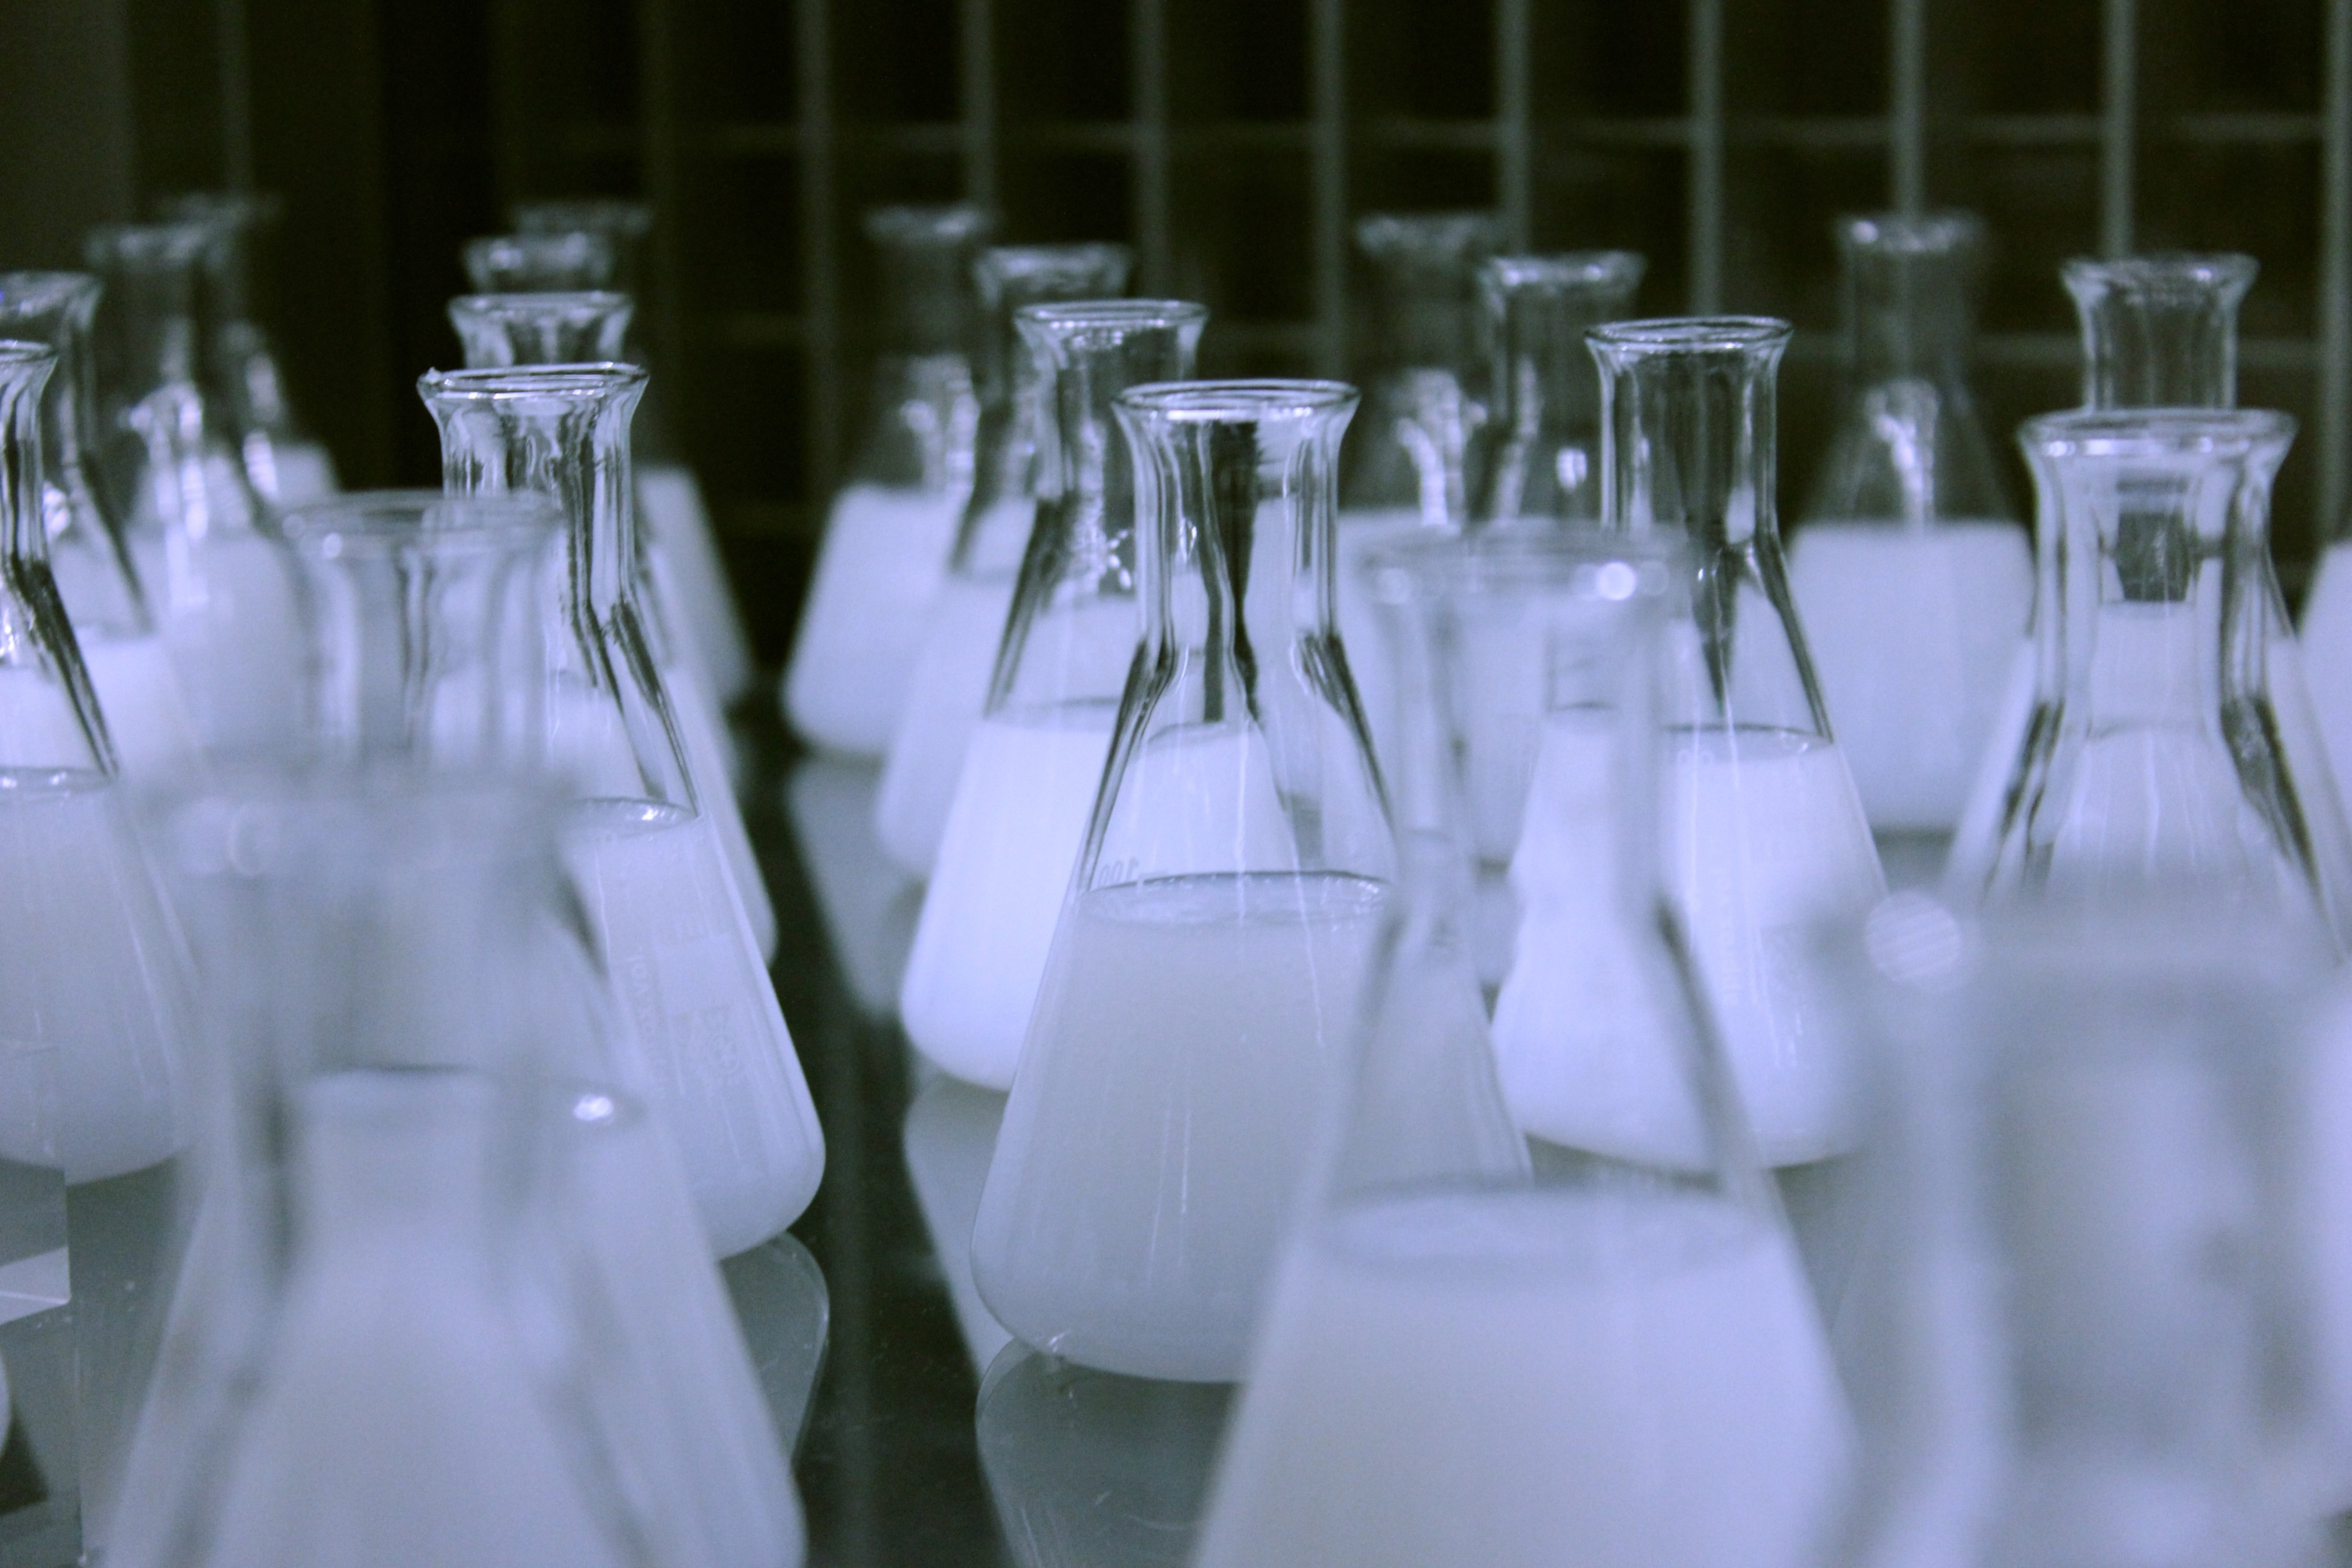 Peptides and Research Chemical manufacturing